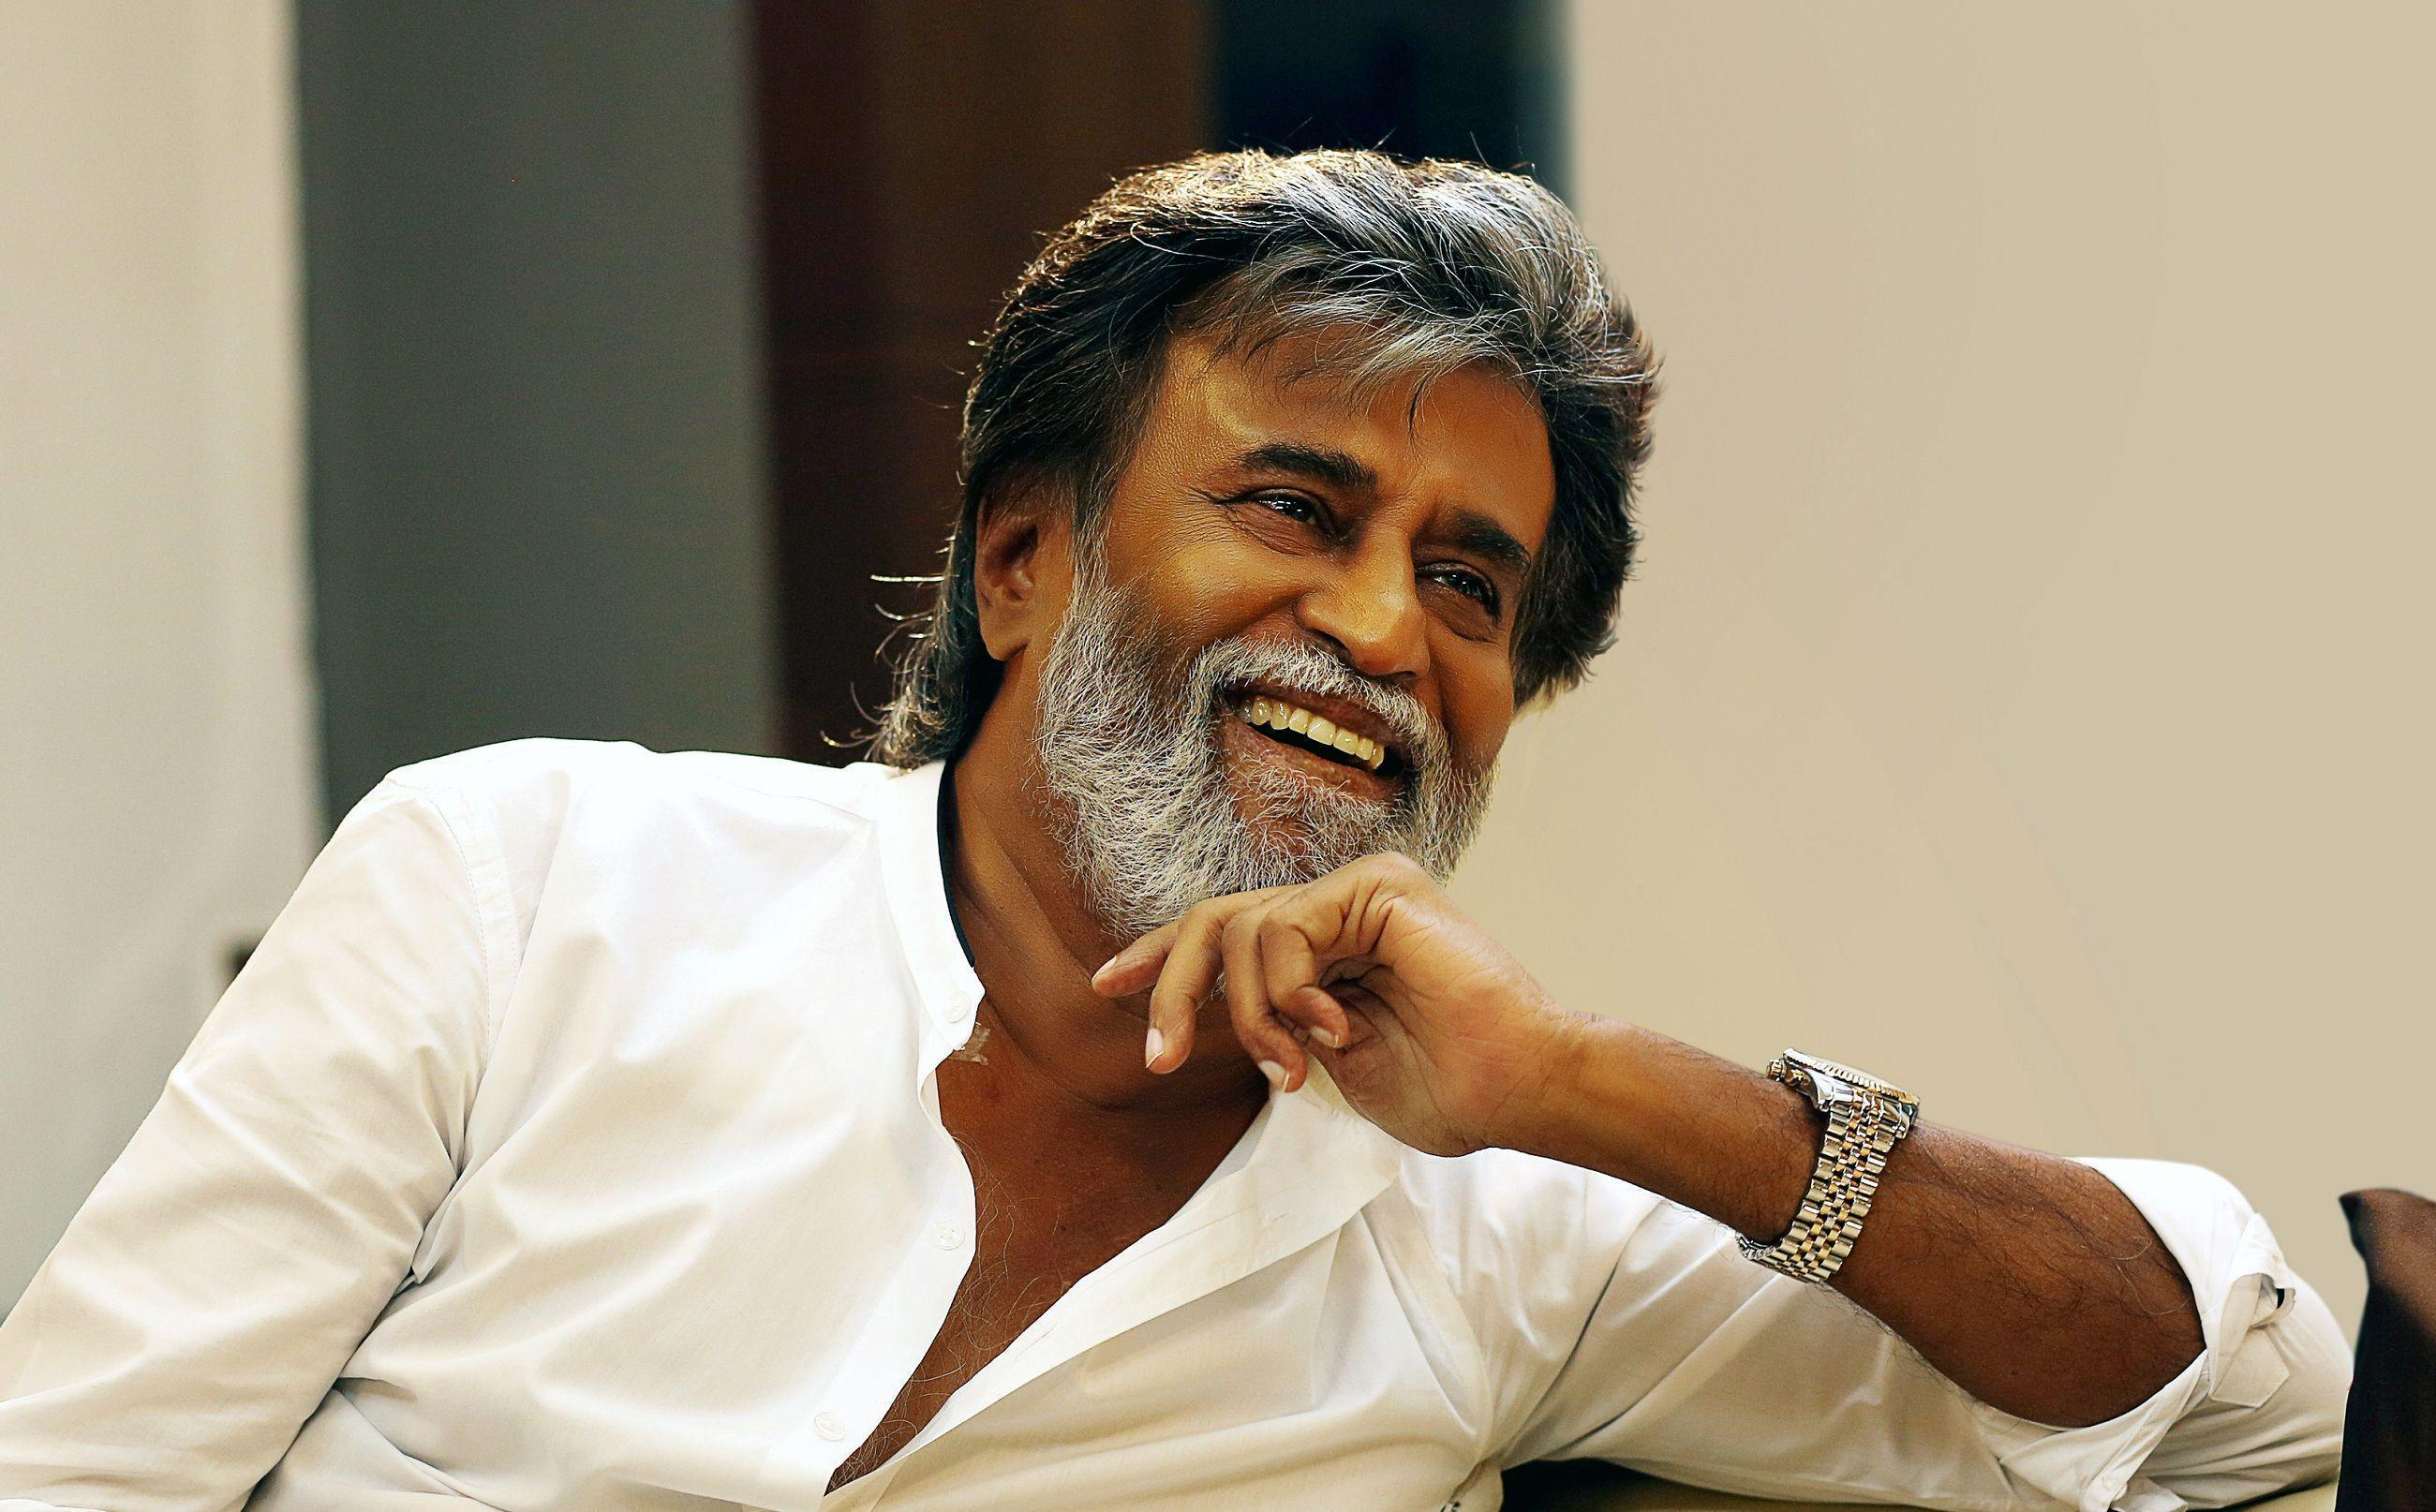 Rajinikanth Wallpapers Kabali - HDWallpaper.io